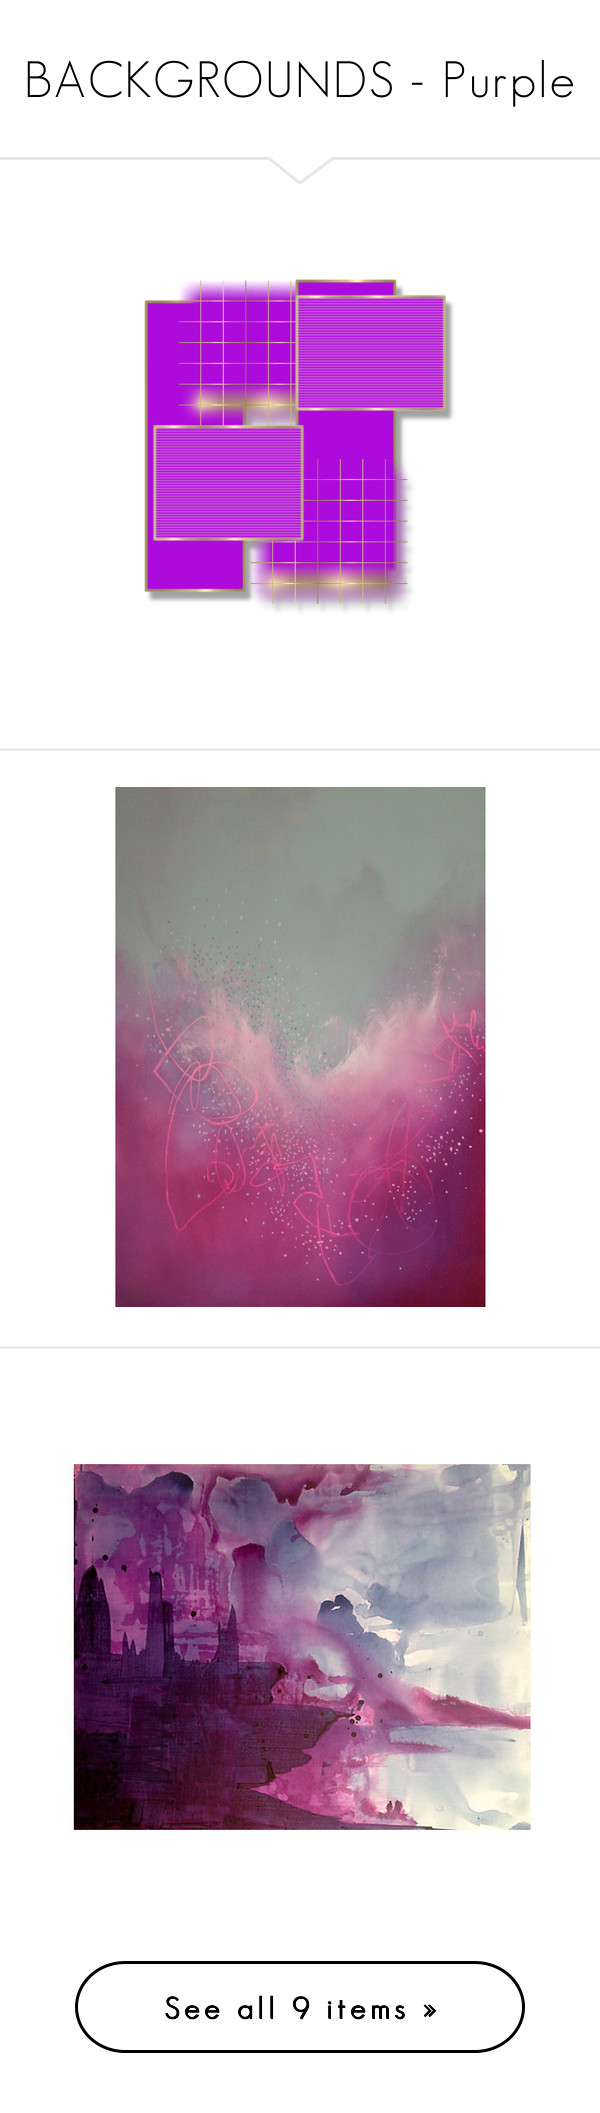 """""""BACKGROUNDS - Purple"""" by for-the-art-of-fashion ❤ liked on Polyvore featuring home, home decor, wall art, backgrounds, art, fillers, acrylic home decor, abstract acrylic painting, abstract painting and acrylic painting"""